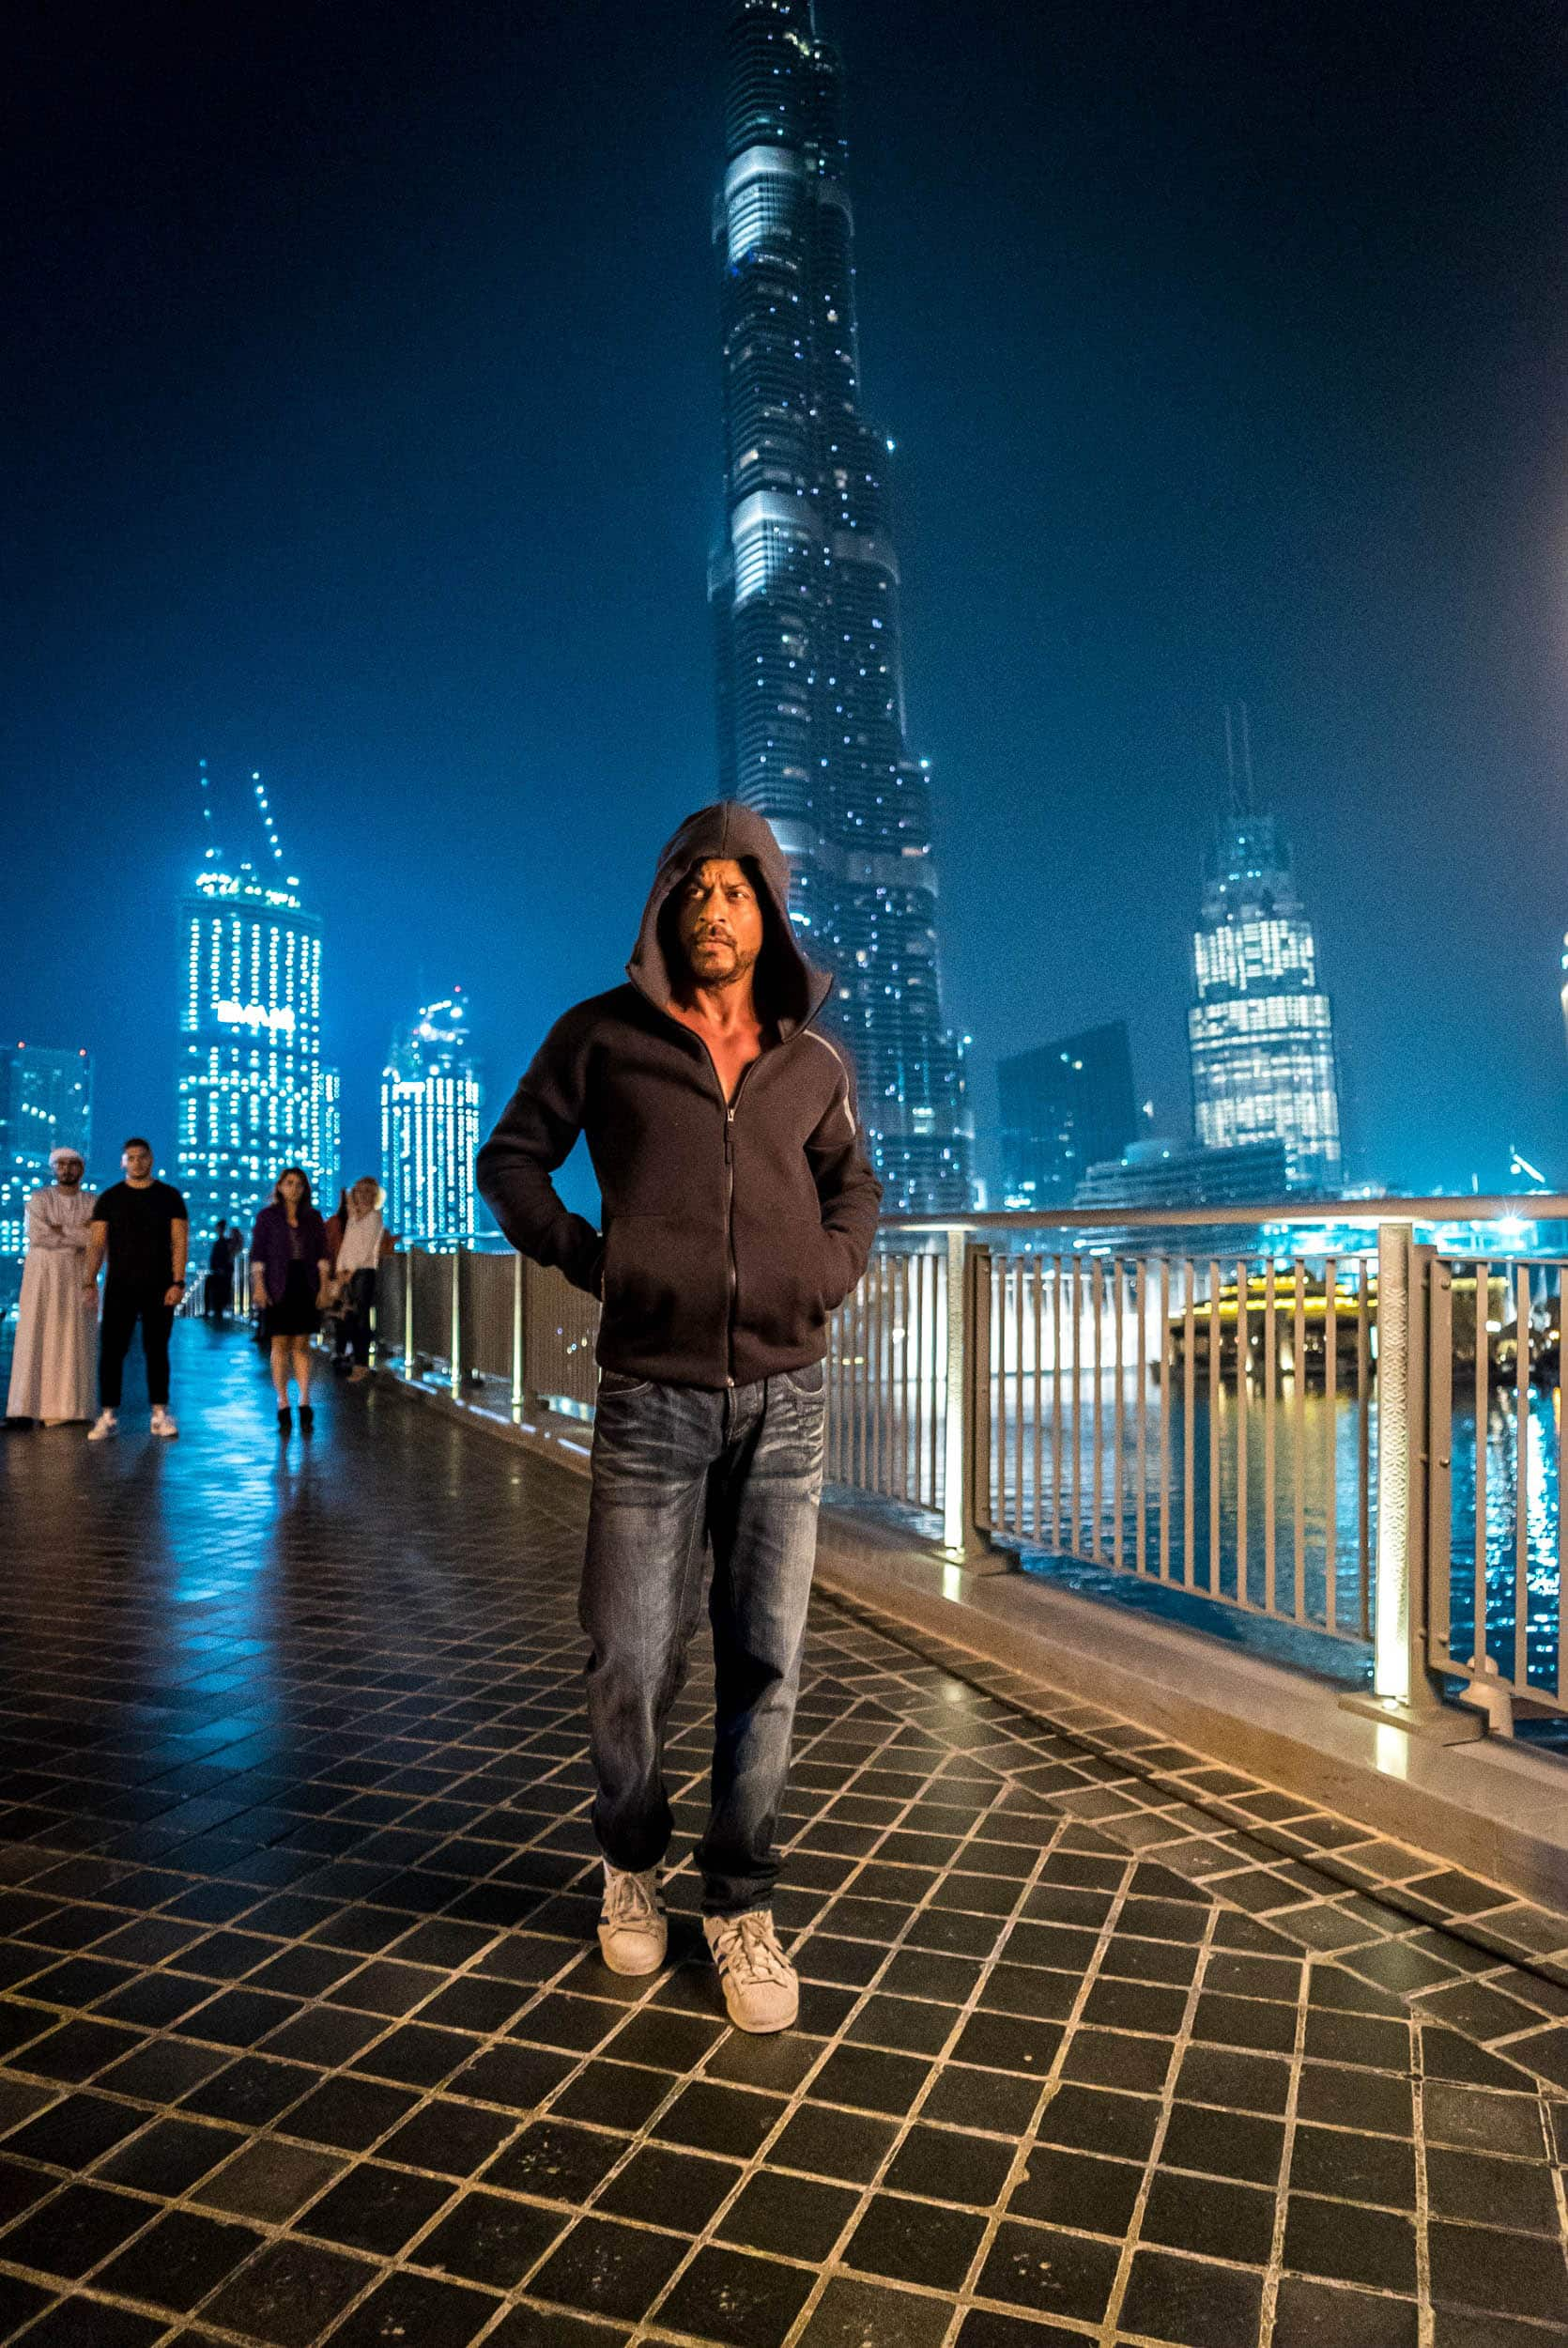 Shah Rukh Khan's Name Lights Up Burj Khalifa On His Birthday, First Indian To Receive The Honor